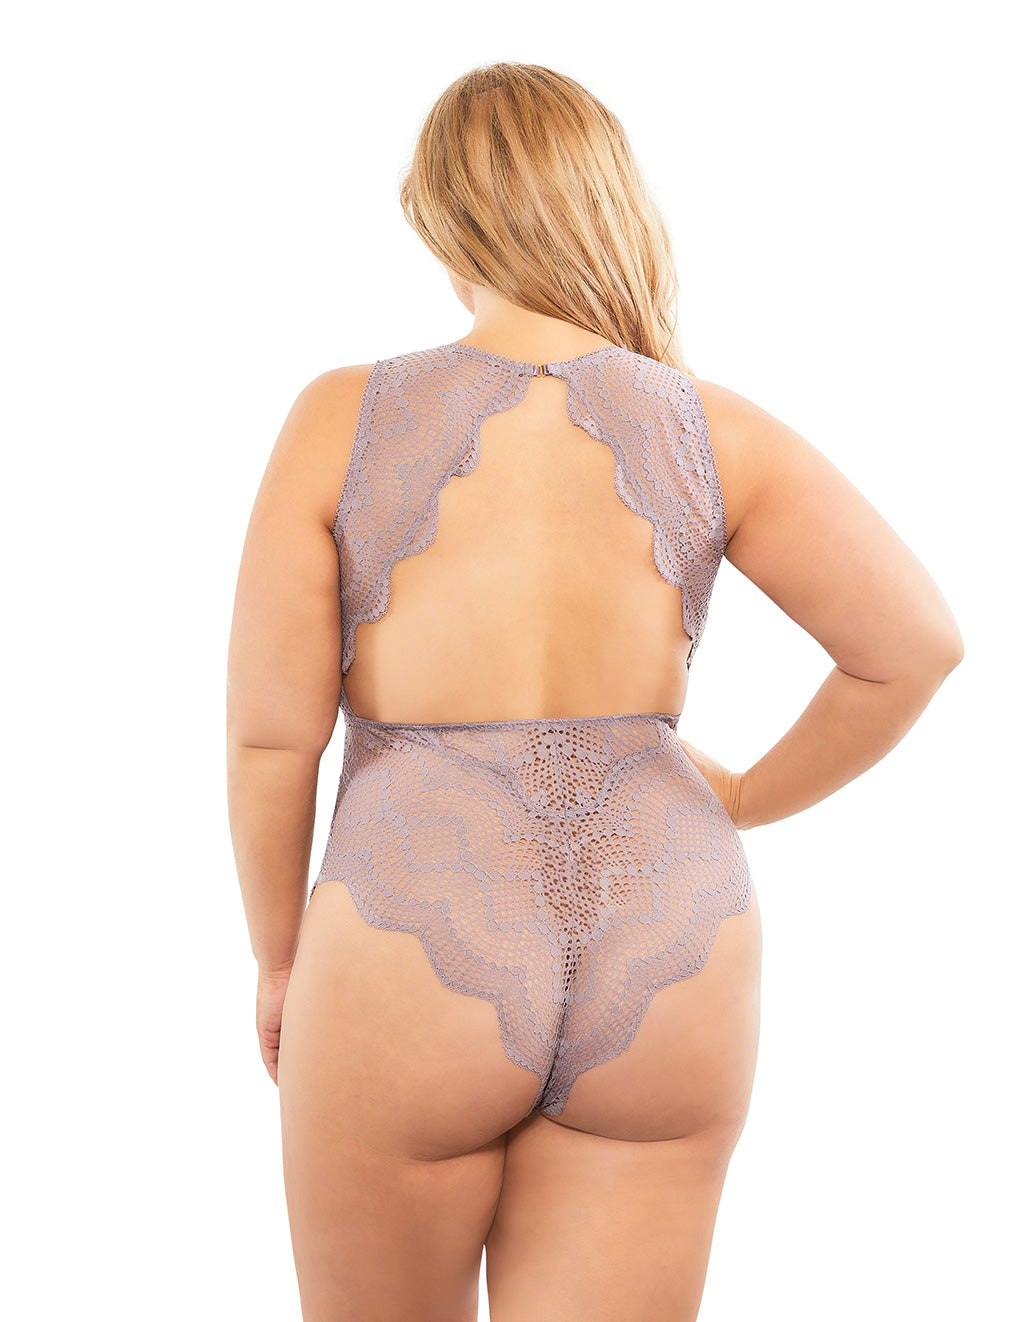 Oh La La Cheri Striped Lace Plunge Teddy Purple Back Plus Size